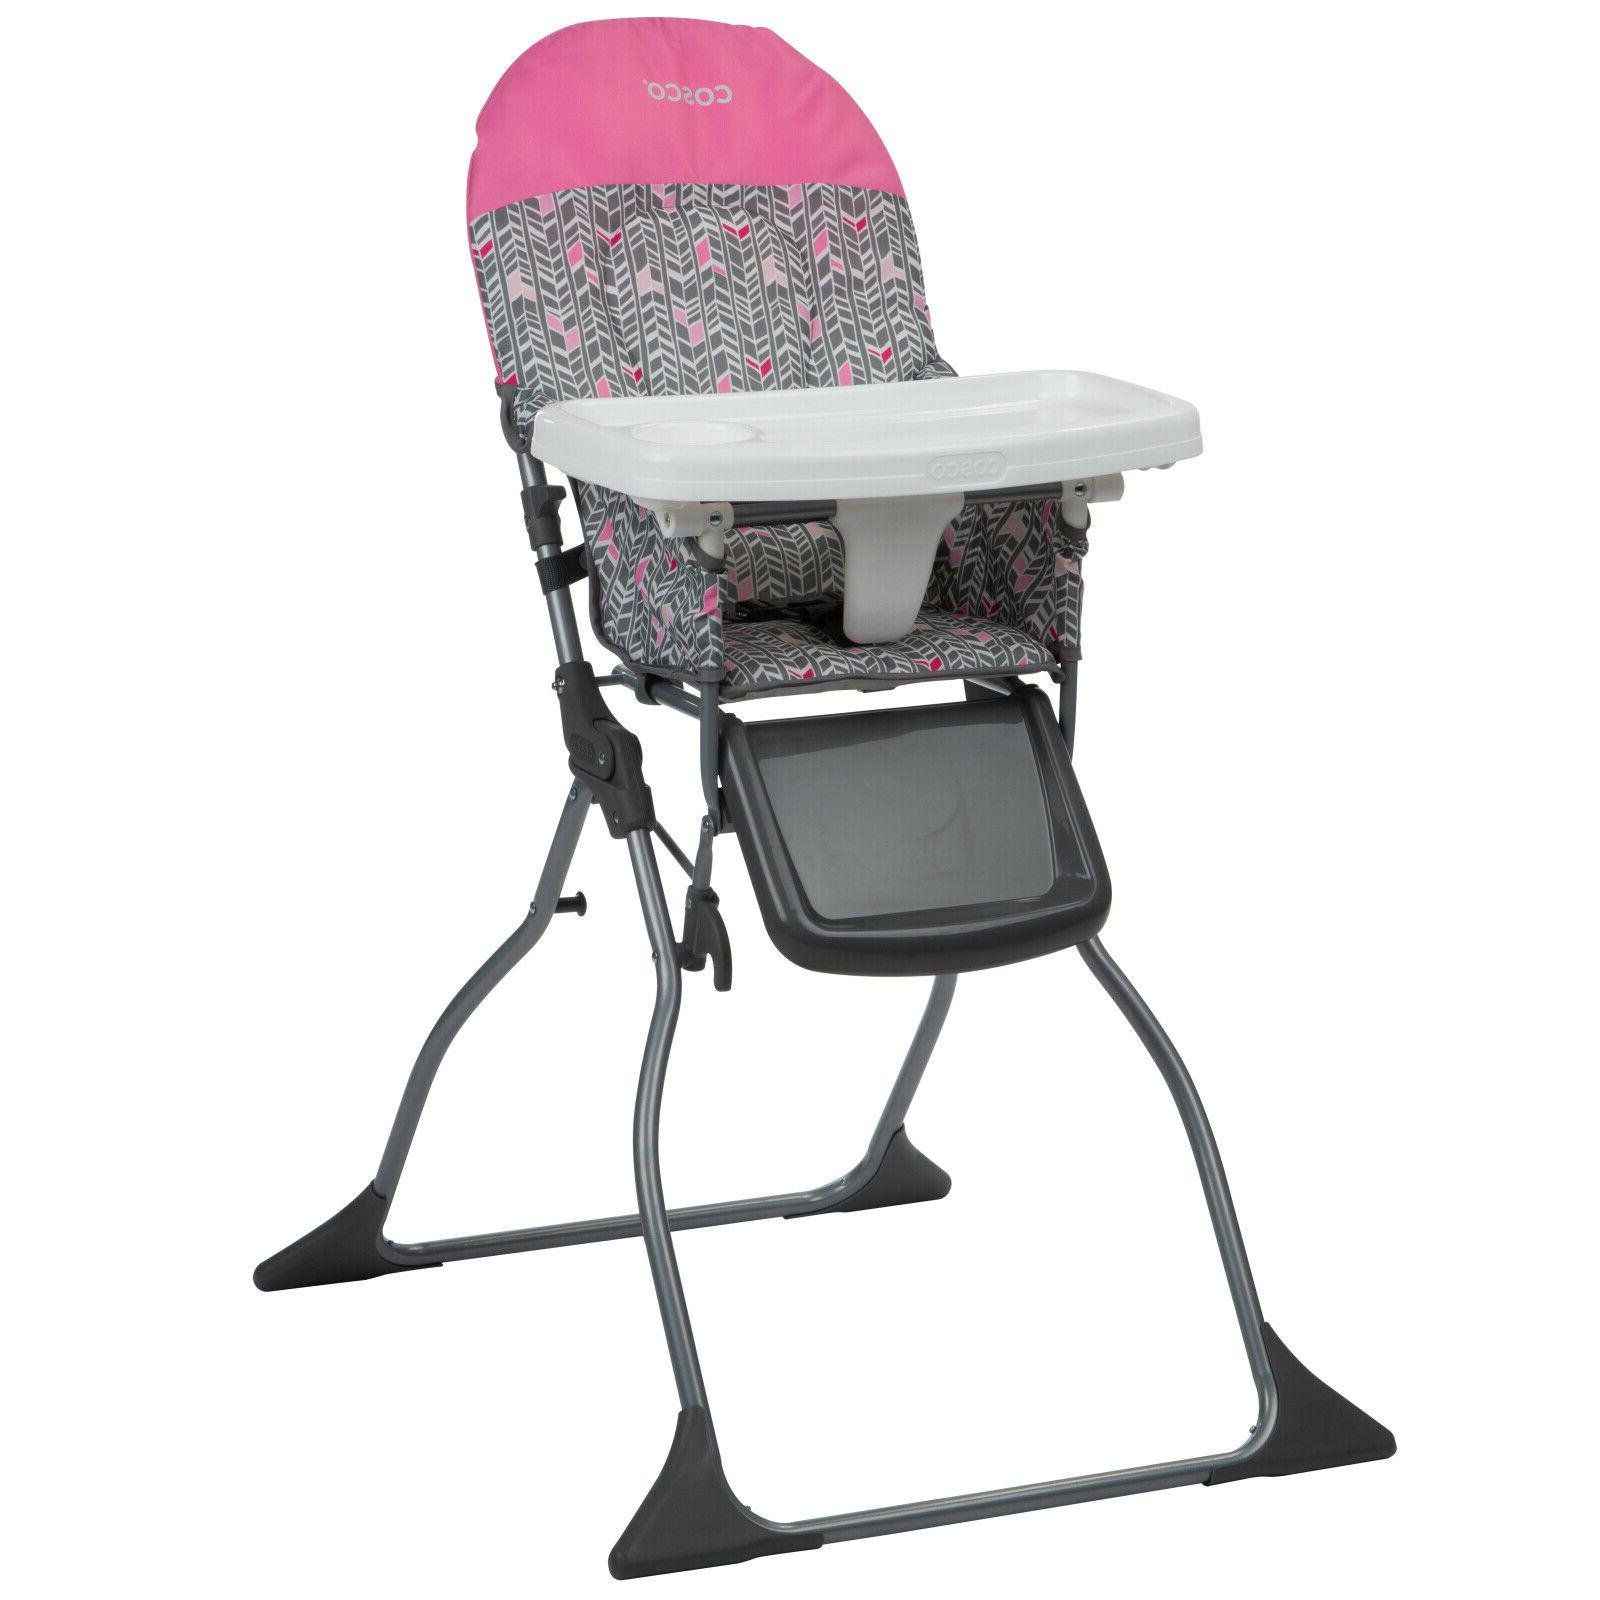 Simple Fold High Chair Adjustable Tray Comfortable rest